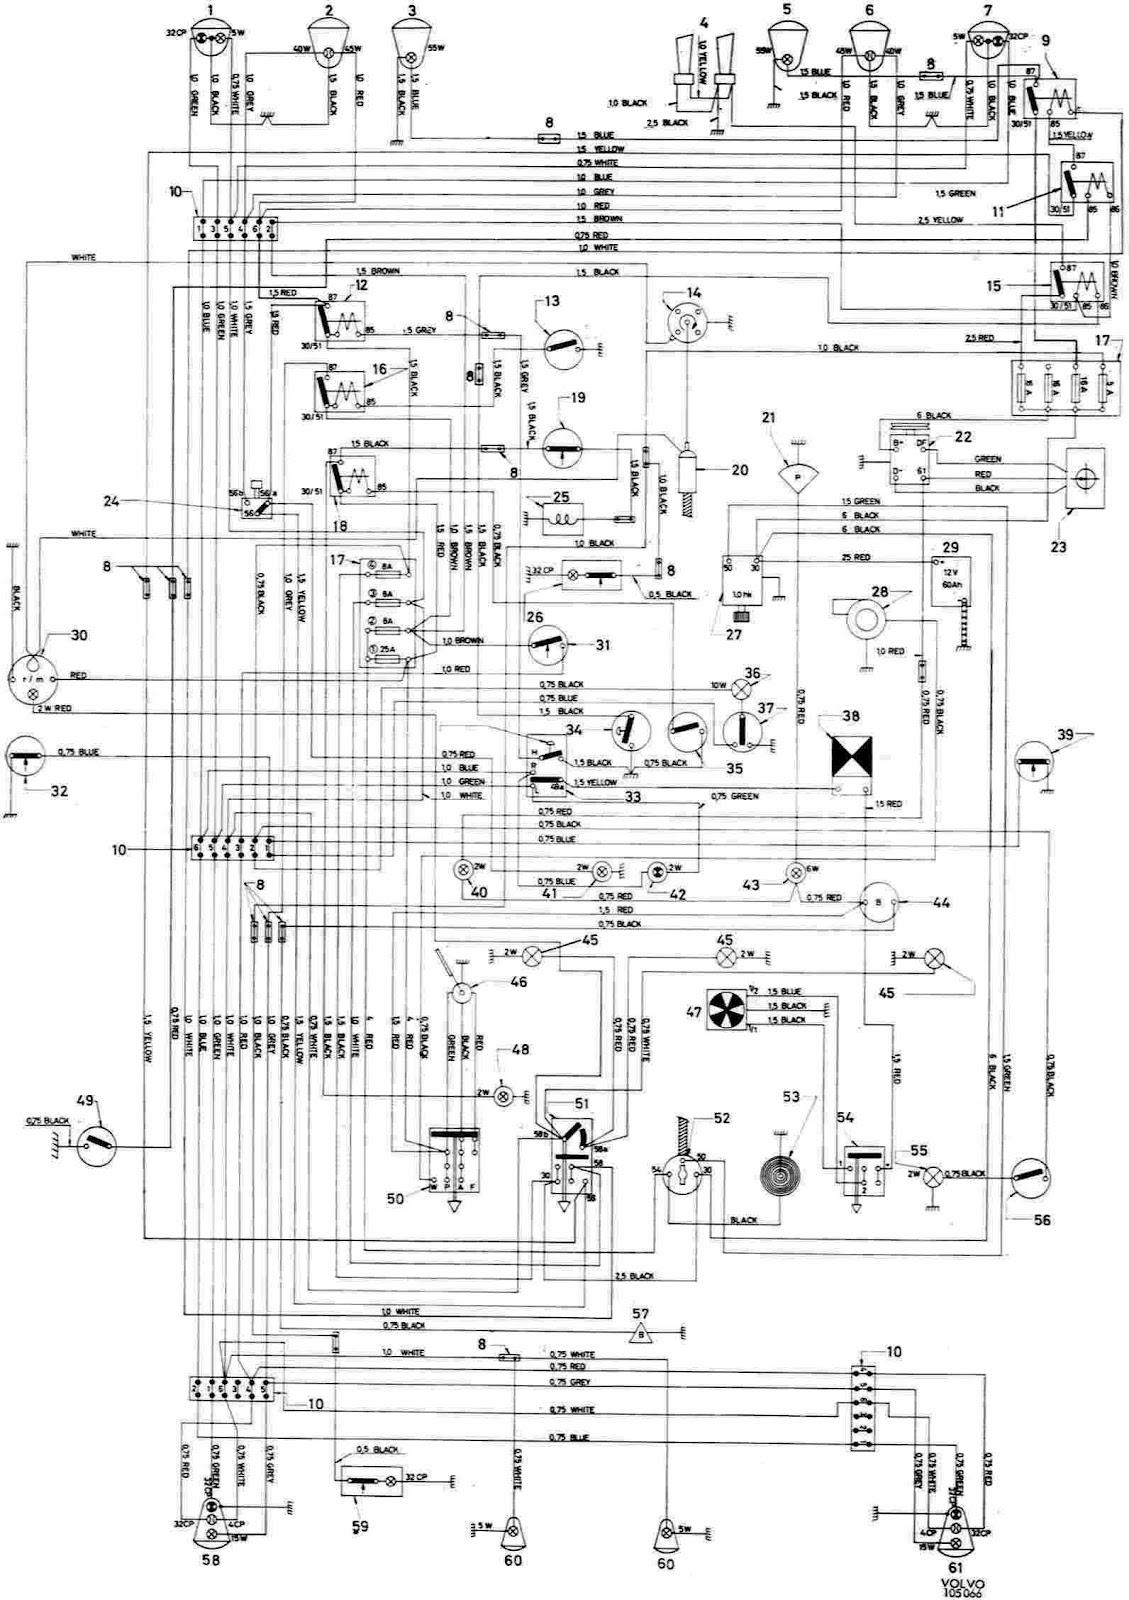 5150 Iii Wiring Diagram 23 Images Diagrams Smart Car Fuse Box Volvo 123 Gt Complete Hu 613